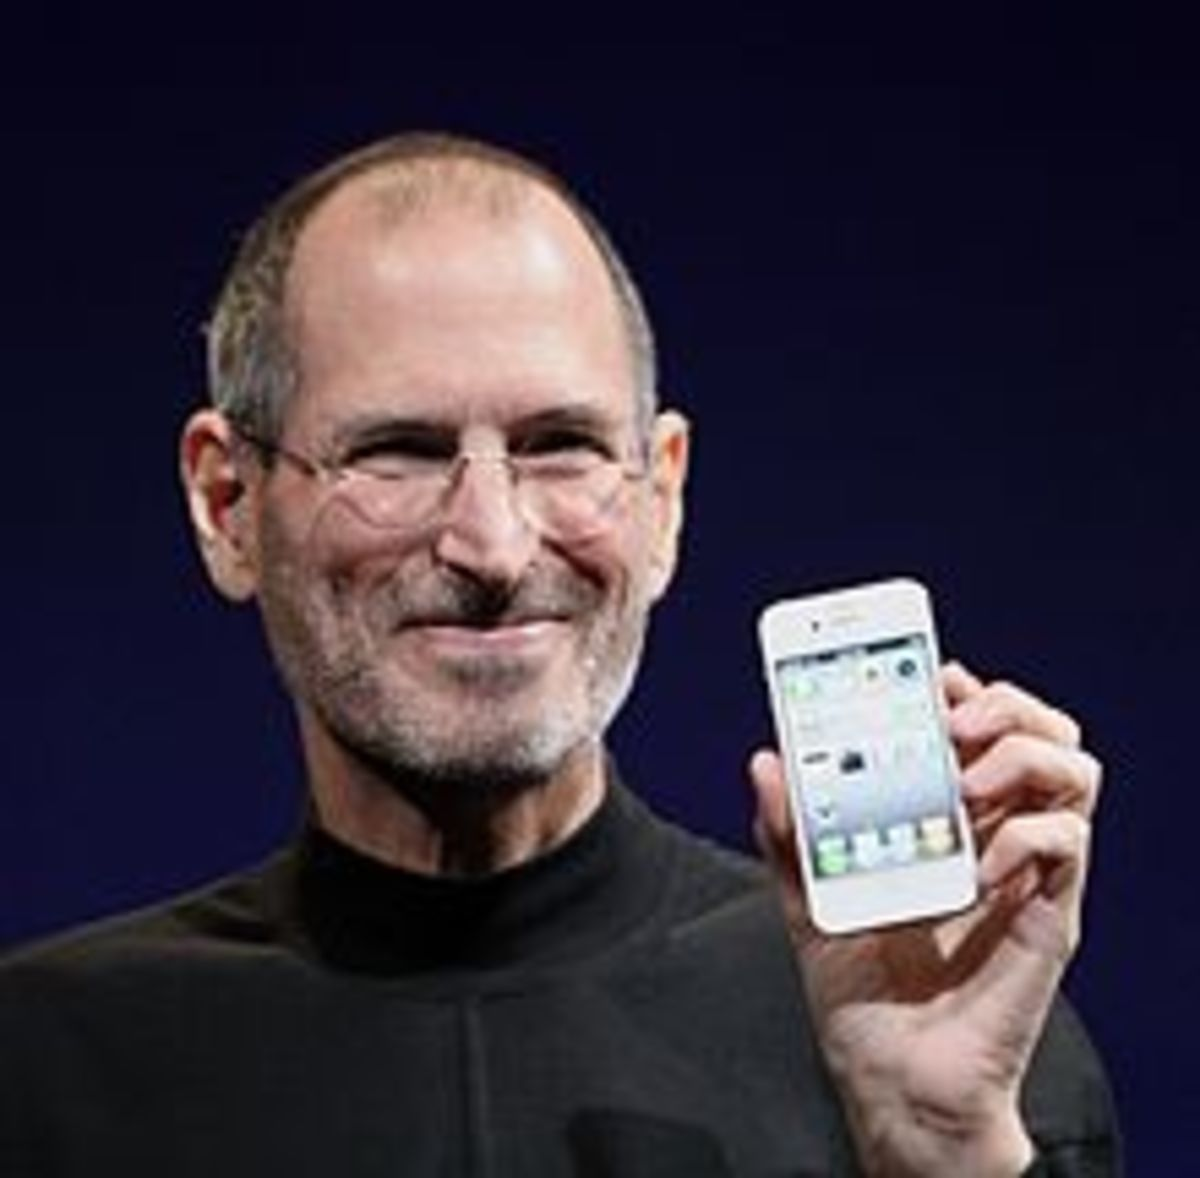 The Late Steve Jobs founder of apple computers was highly influenced by zen and Eastern philosophy. His designs reflect  East-West  aesthetic elements where essence meets form. Intuitive, uncluttered yet complex and visually apealing